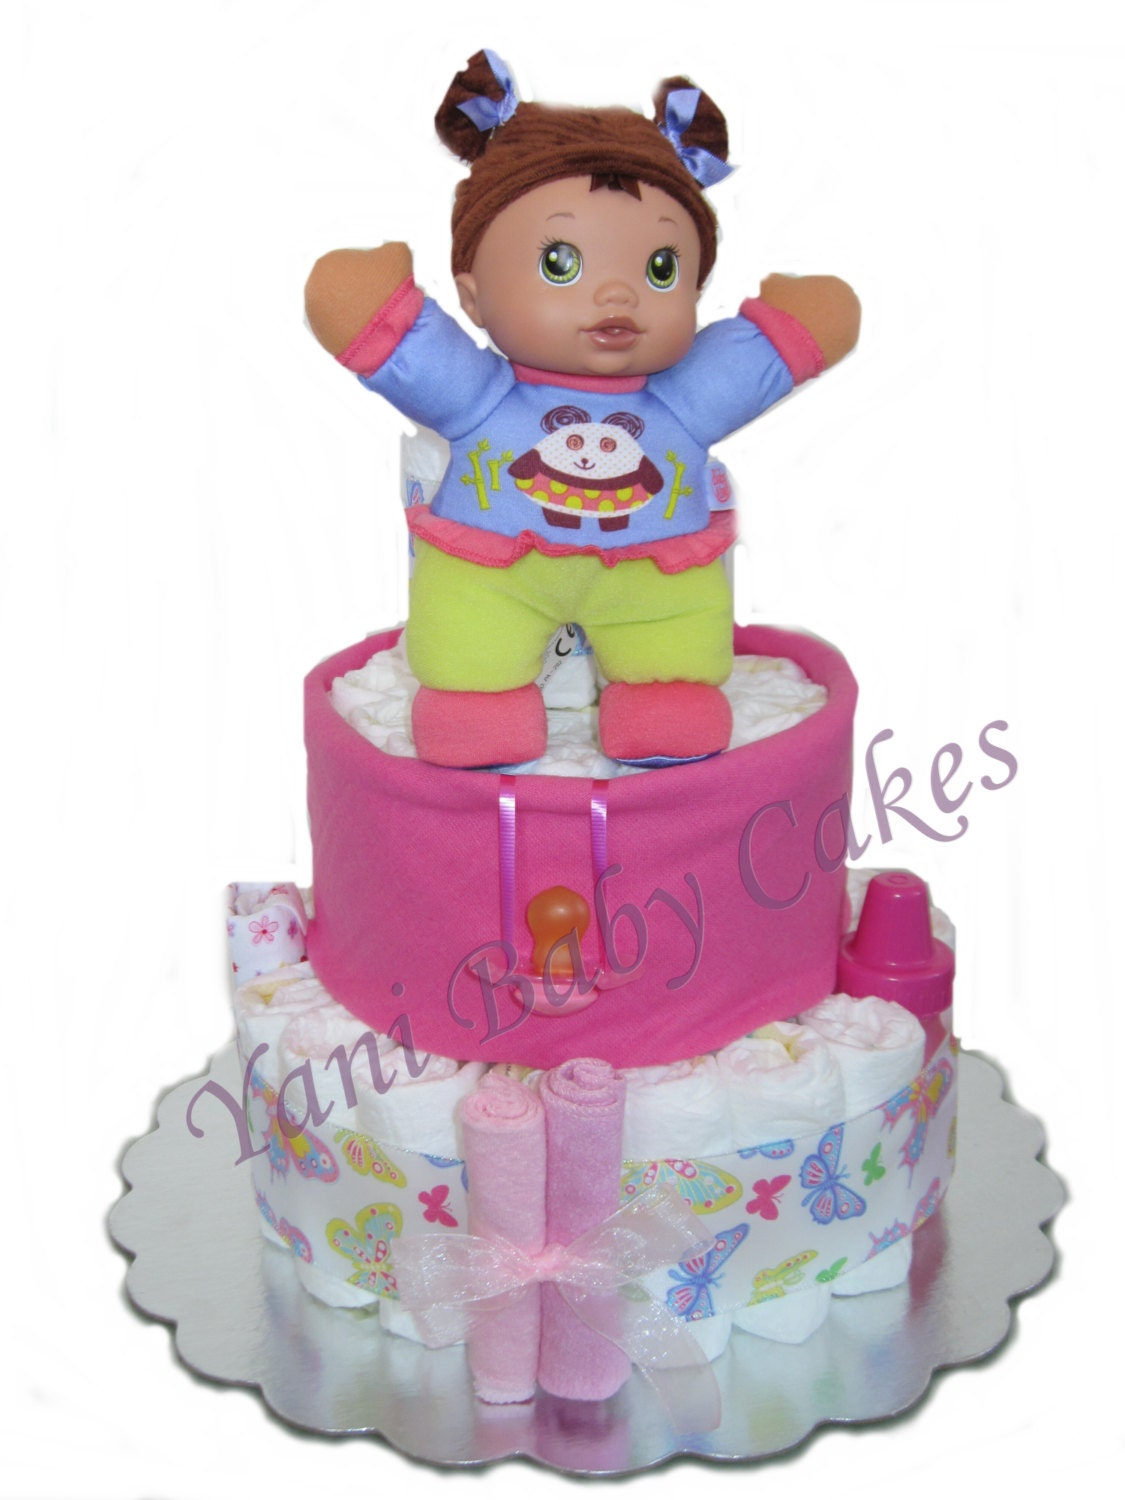 Sale Baby Girl Diaper Cake Baby Shower Centerpiece Baby Etsy